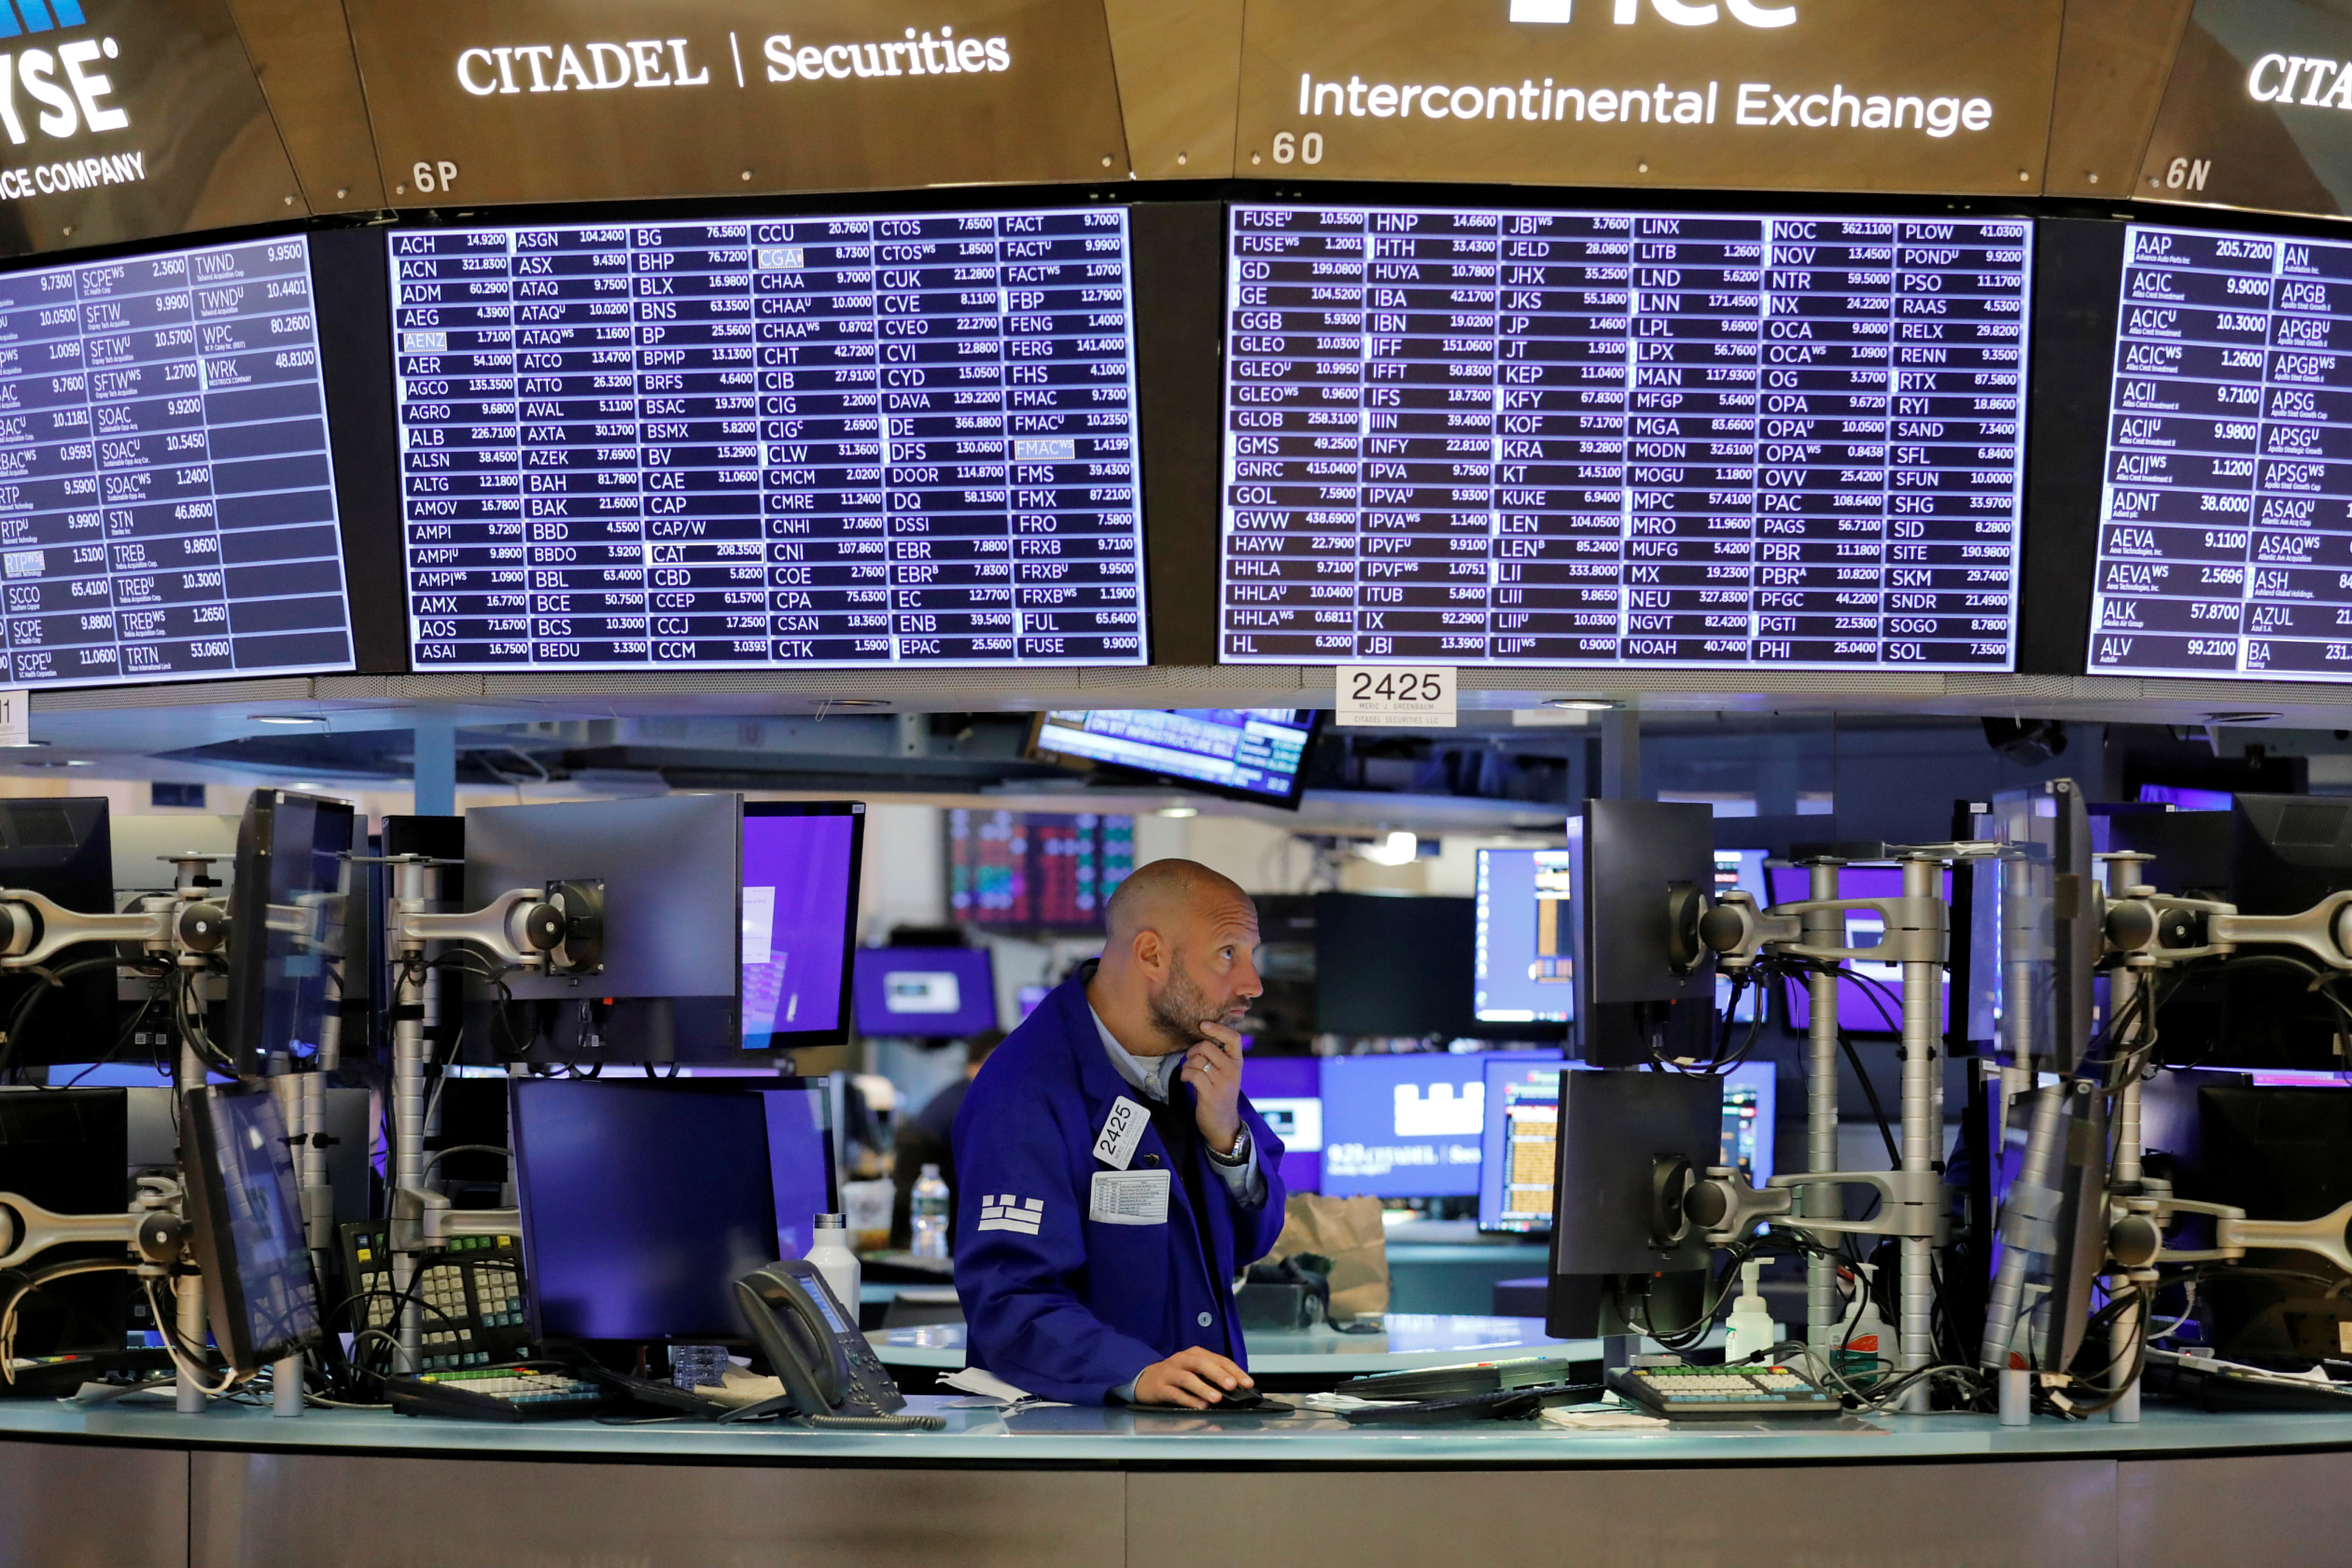 A trader works on the trading floor at the New York Stock Exchange (NYSE) in Manhattan, New York City, U.S., August 9, 2021. REUTERS/Andrew Kelly/File Photo